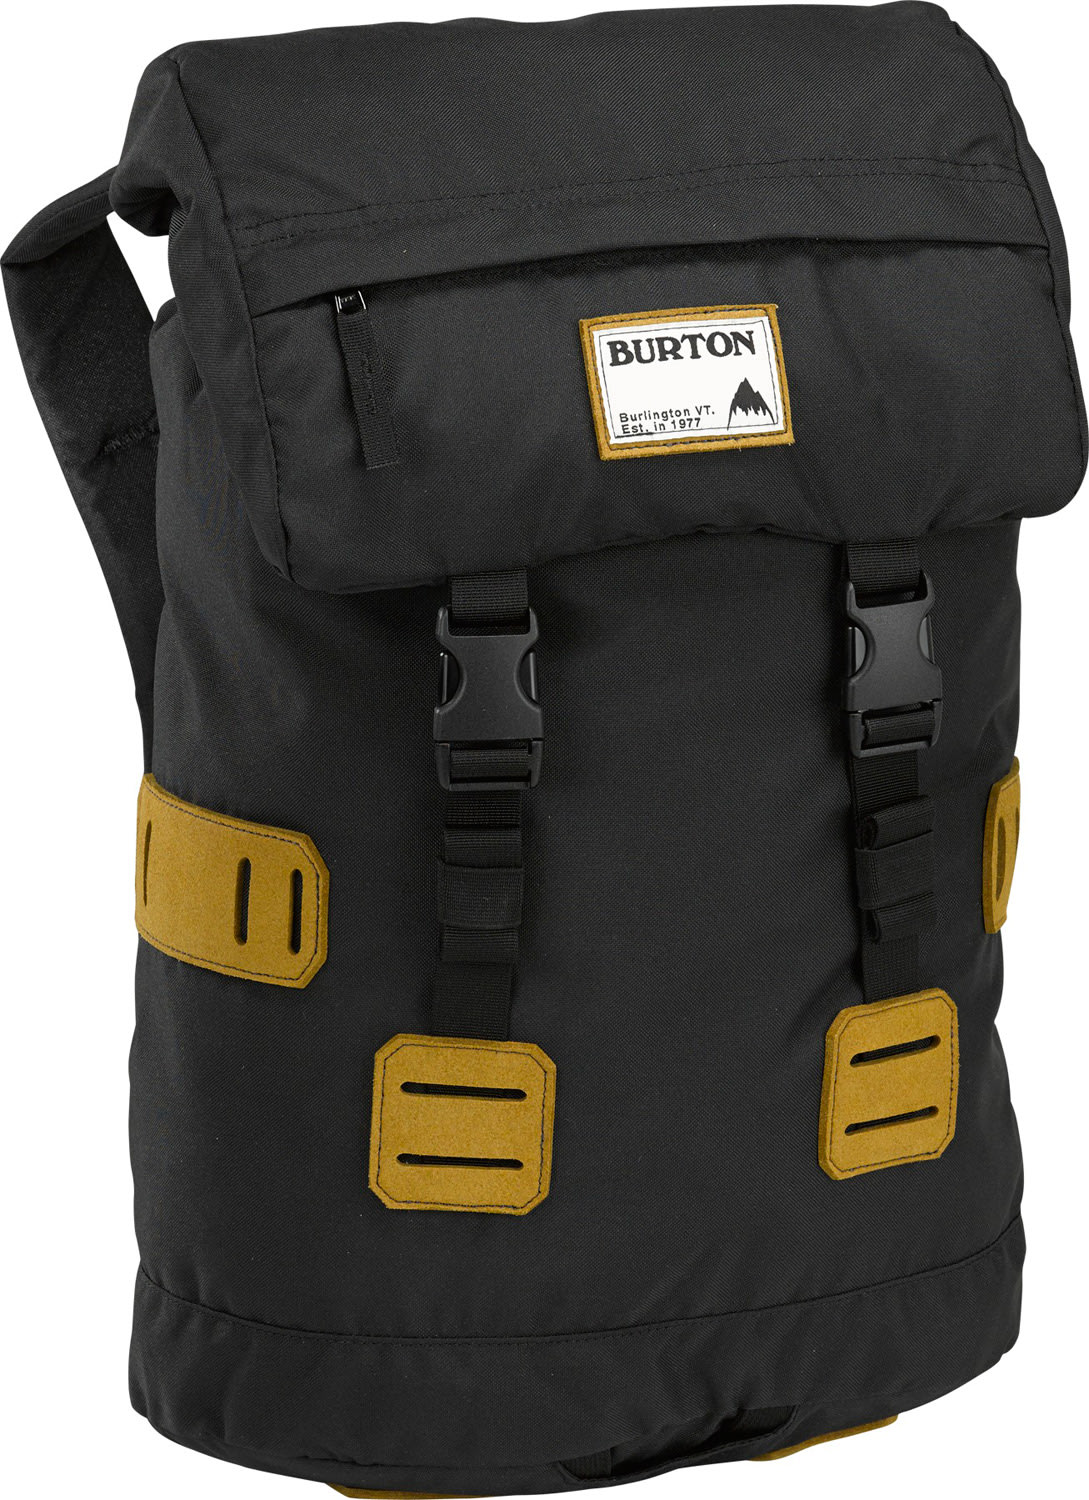 Burton Tinder Backpack True Black 25L